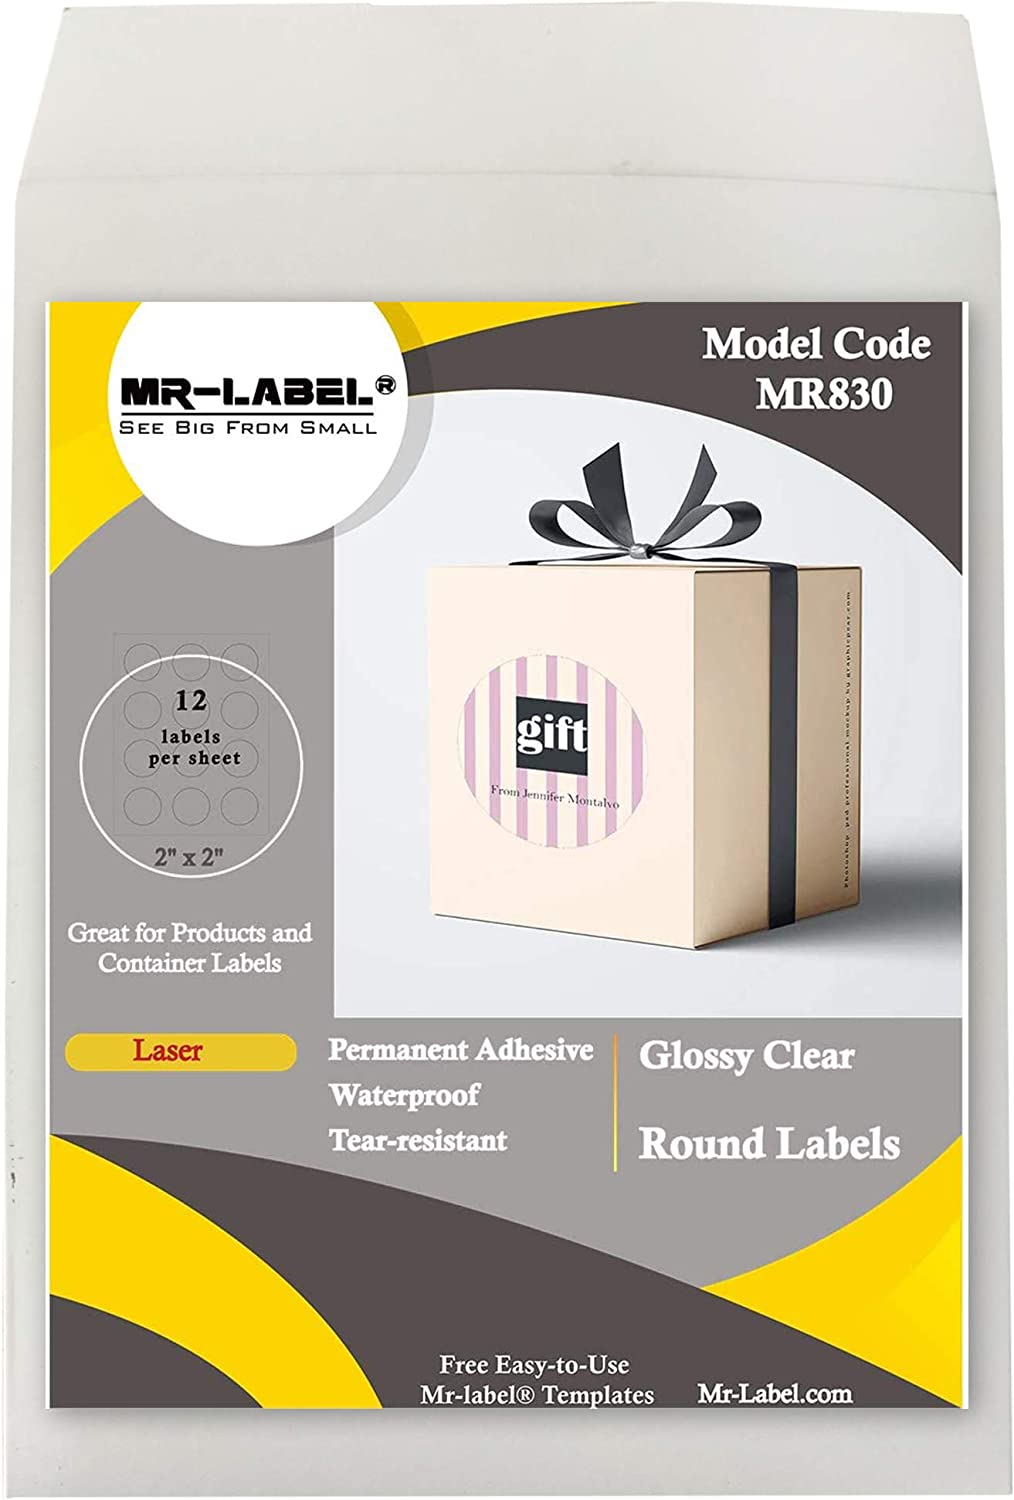 "Mr-Label 2"" Glossy Crystal Clear Round Labels - Waterproof and Tear-Resistant - for Laser Printer Only - Permanent Adhesive - for Food Package 